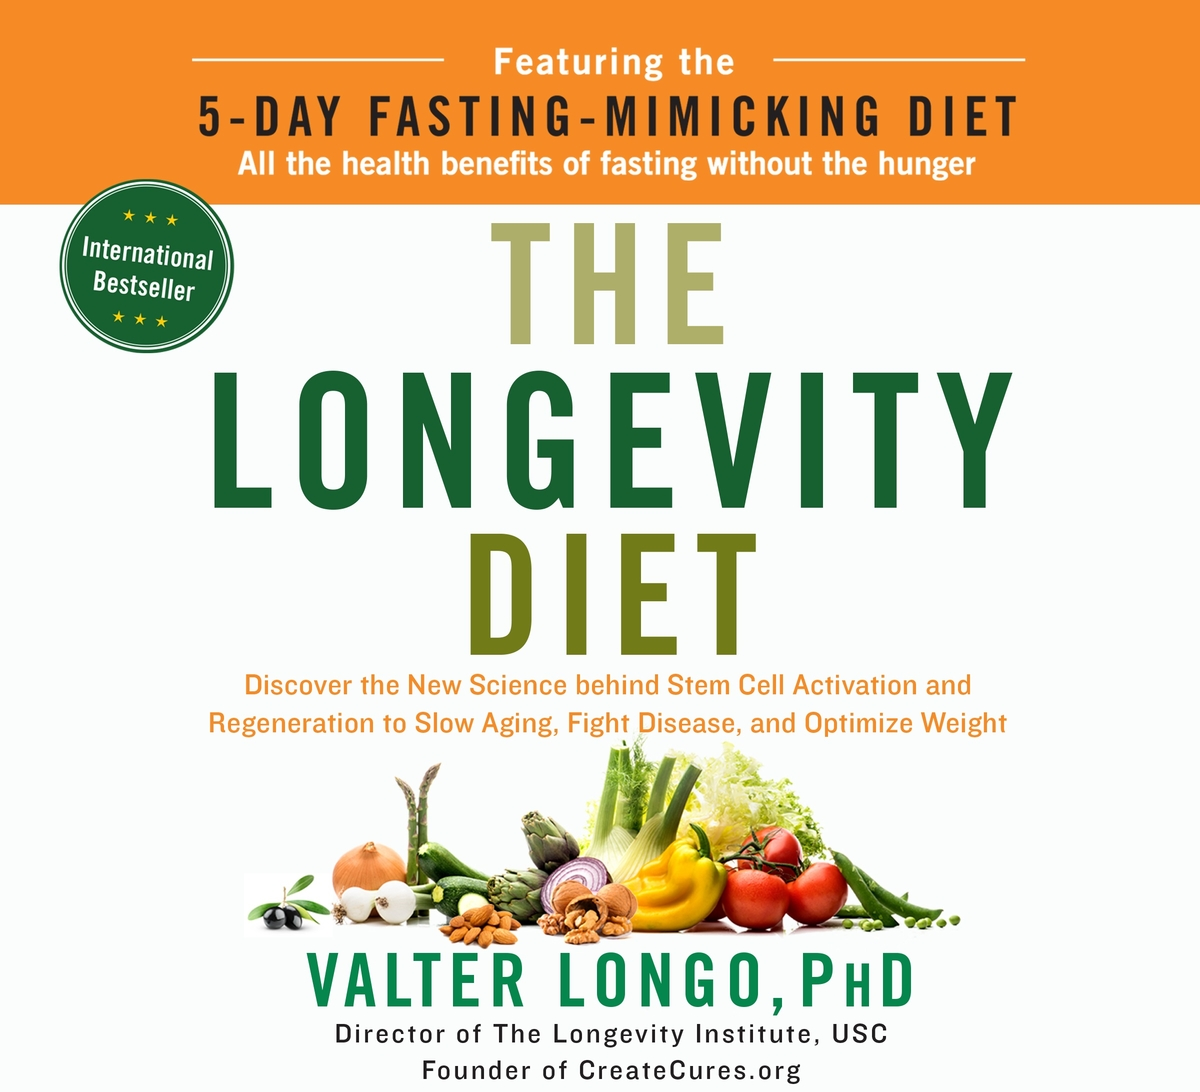 Sažetak knjige – The Longevity Diet (prvi dio)